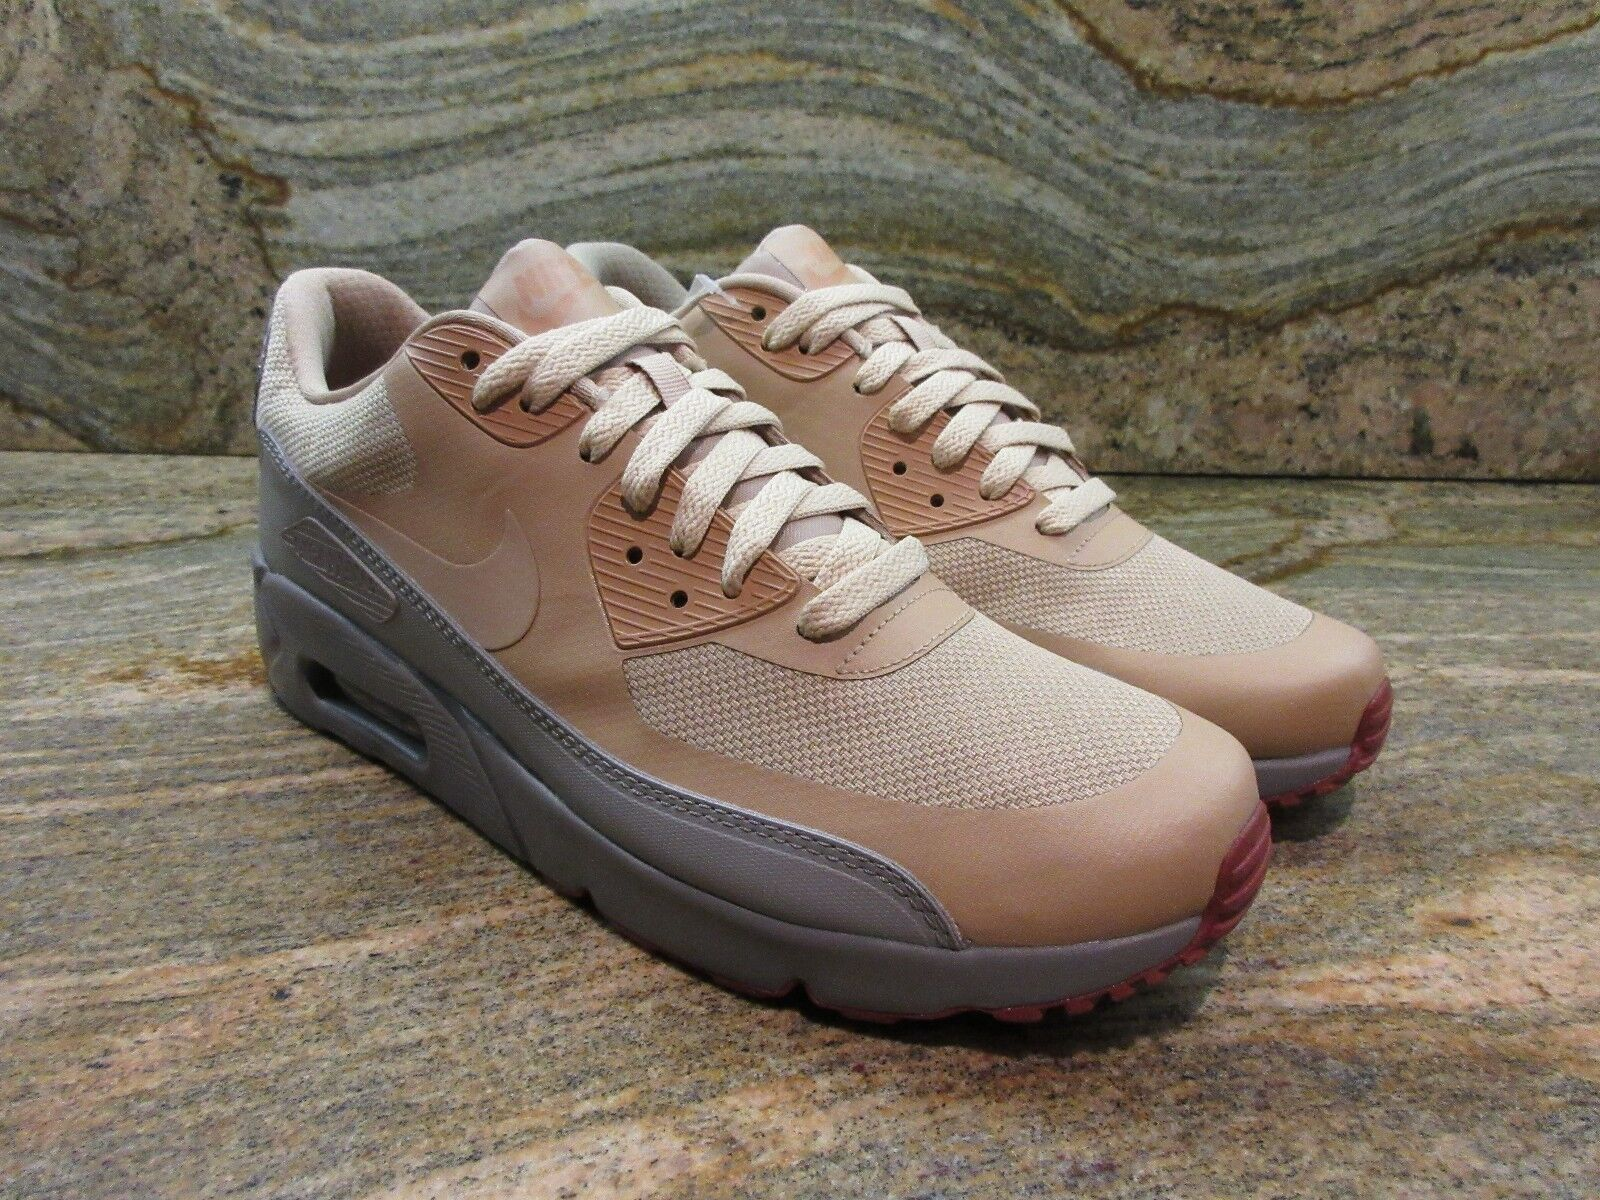 Unreleased Nike Air Max 90 Ultra 2.0 Essential Sample Price reduction Special limited time